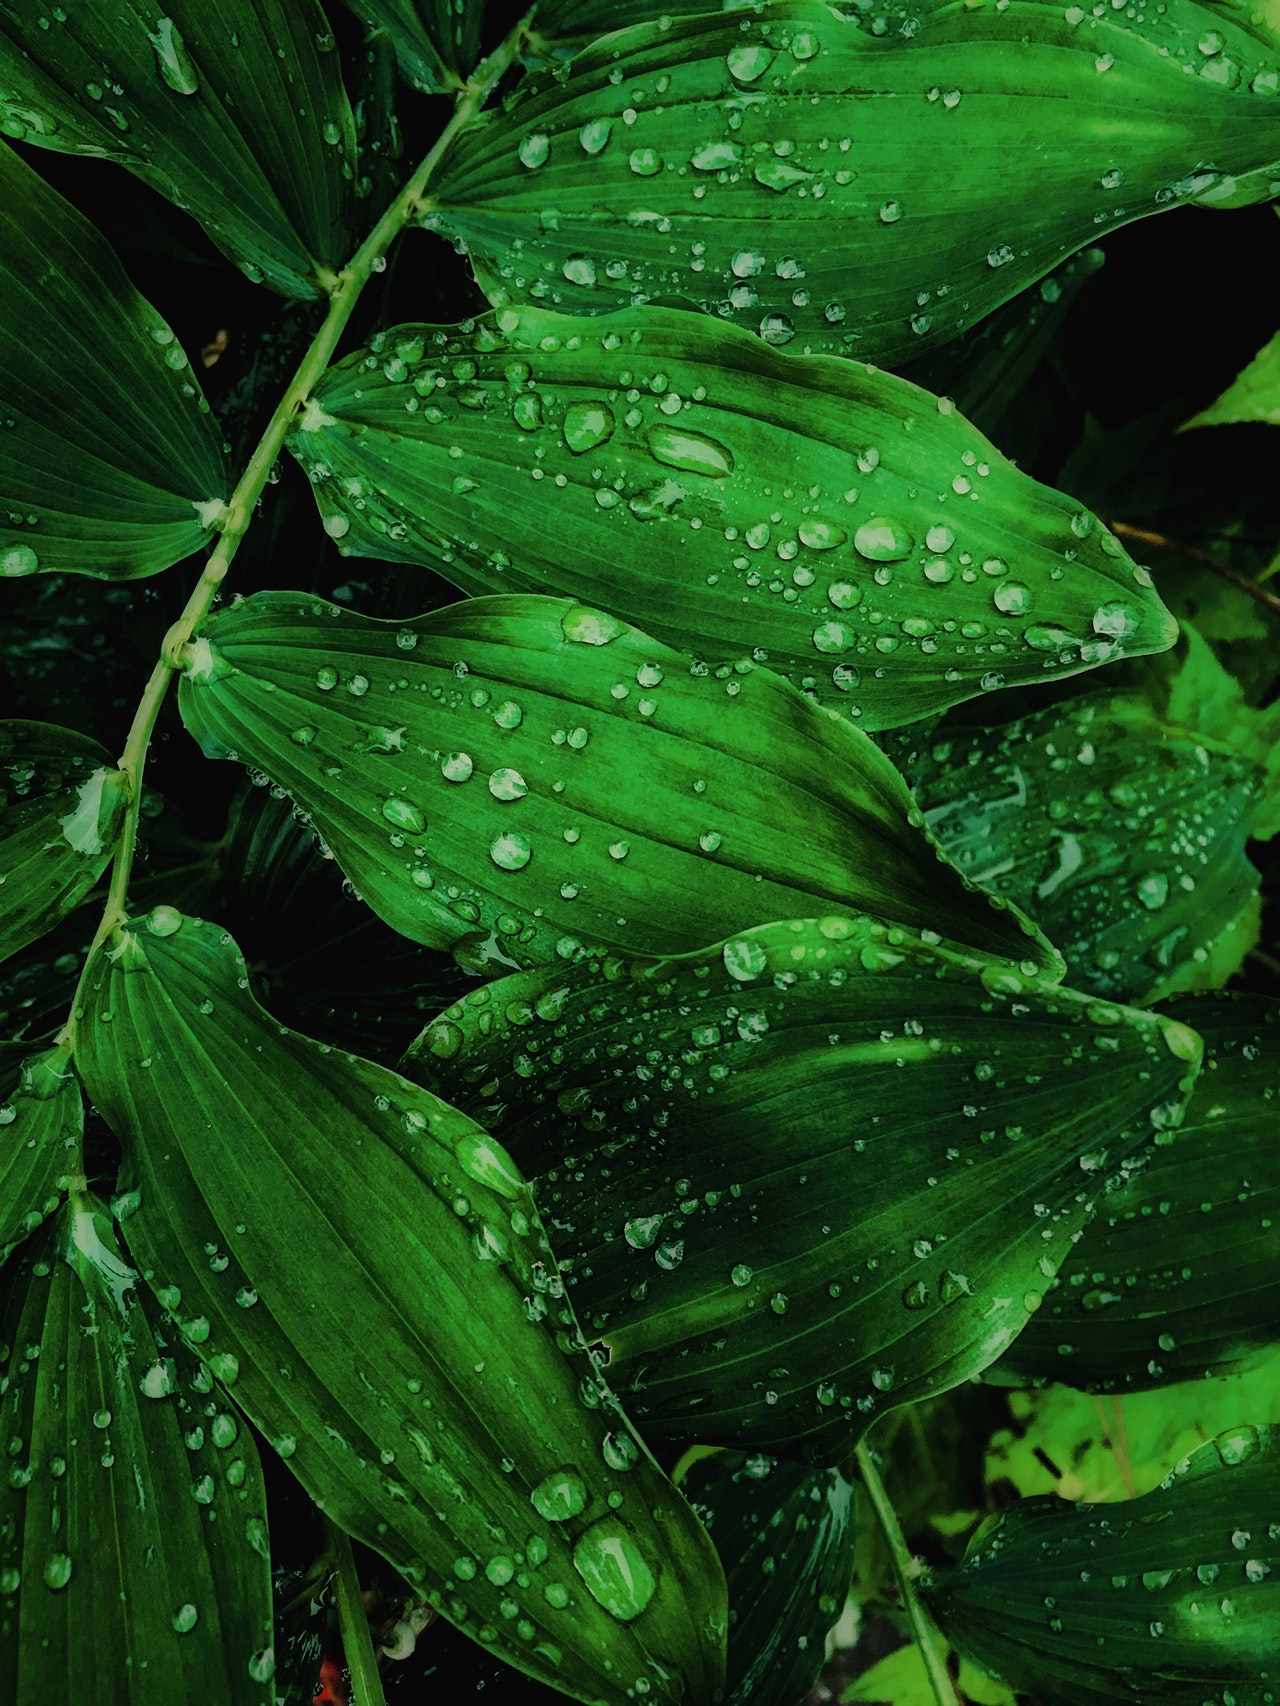 close-up-photo-of-water-drops-on-leaves-2473990